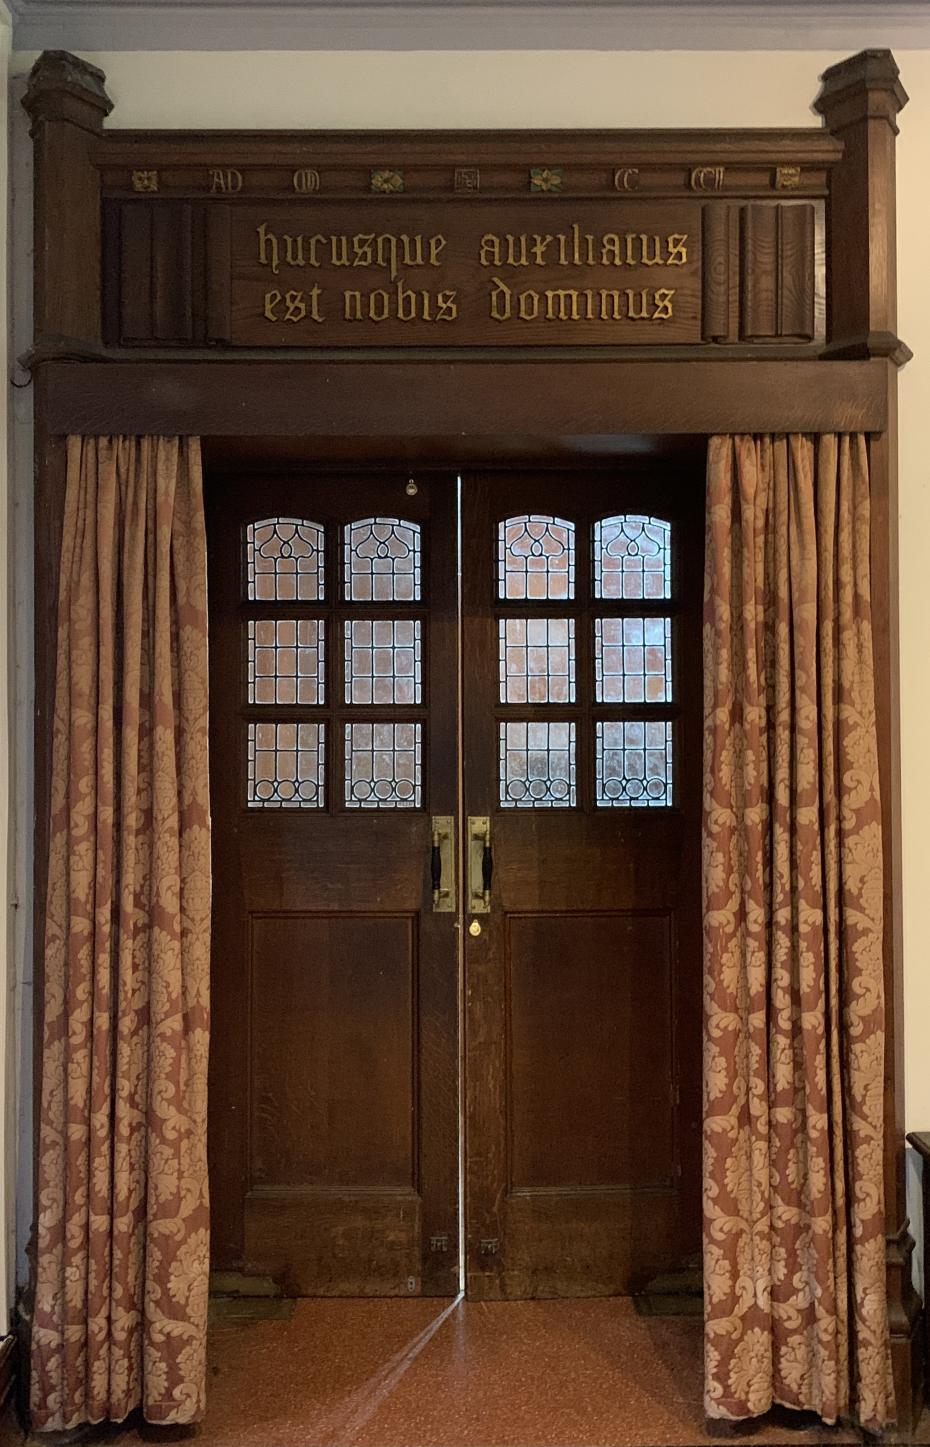 The Chapel door with the inscription above it, photographed by Hannah Sargent (Communications Officer 2013), 2020 (archive reference: GCPH 2/4/17).